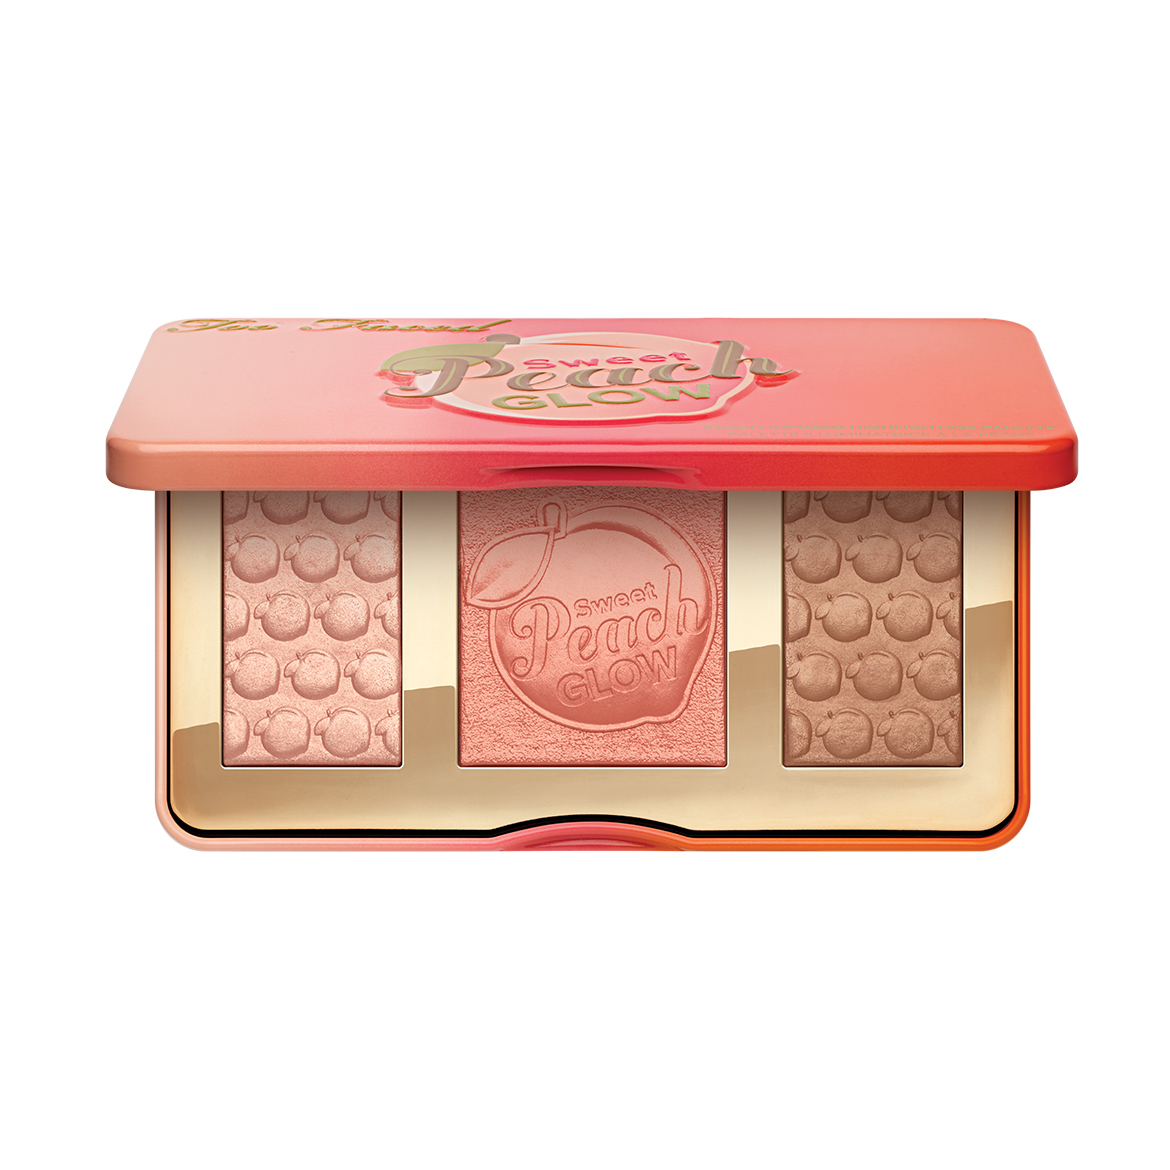 Too Faced Sweet Peach Glow Infused Highlighting Palette